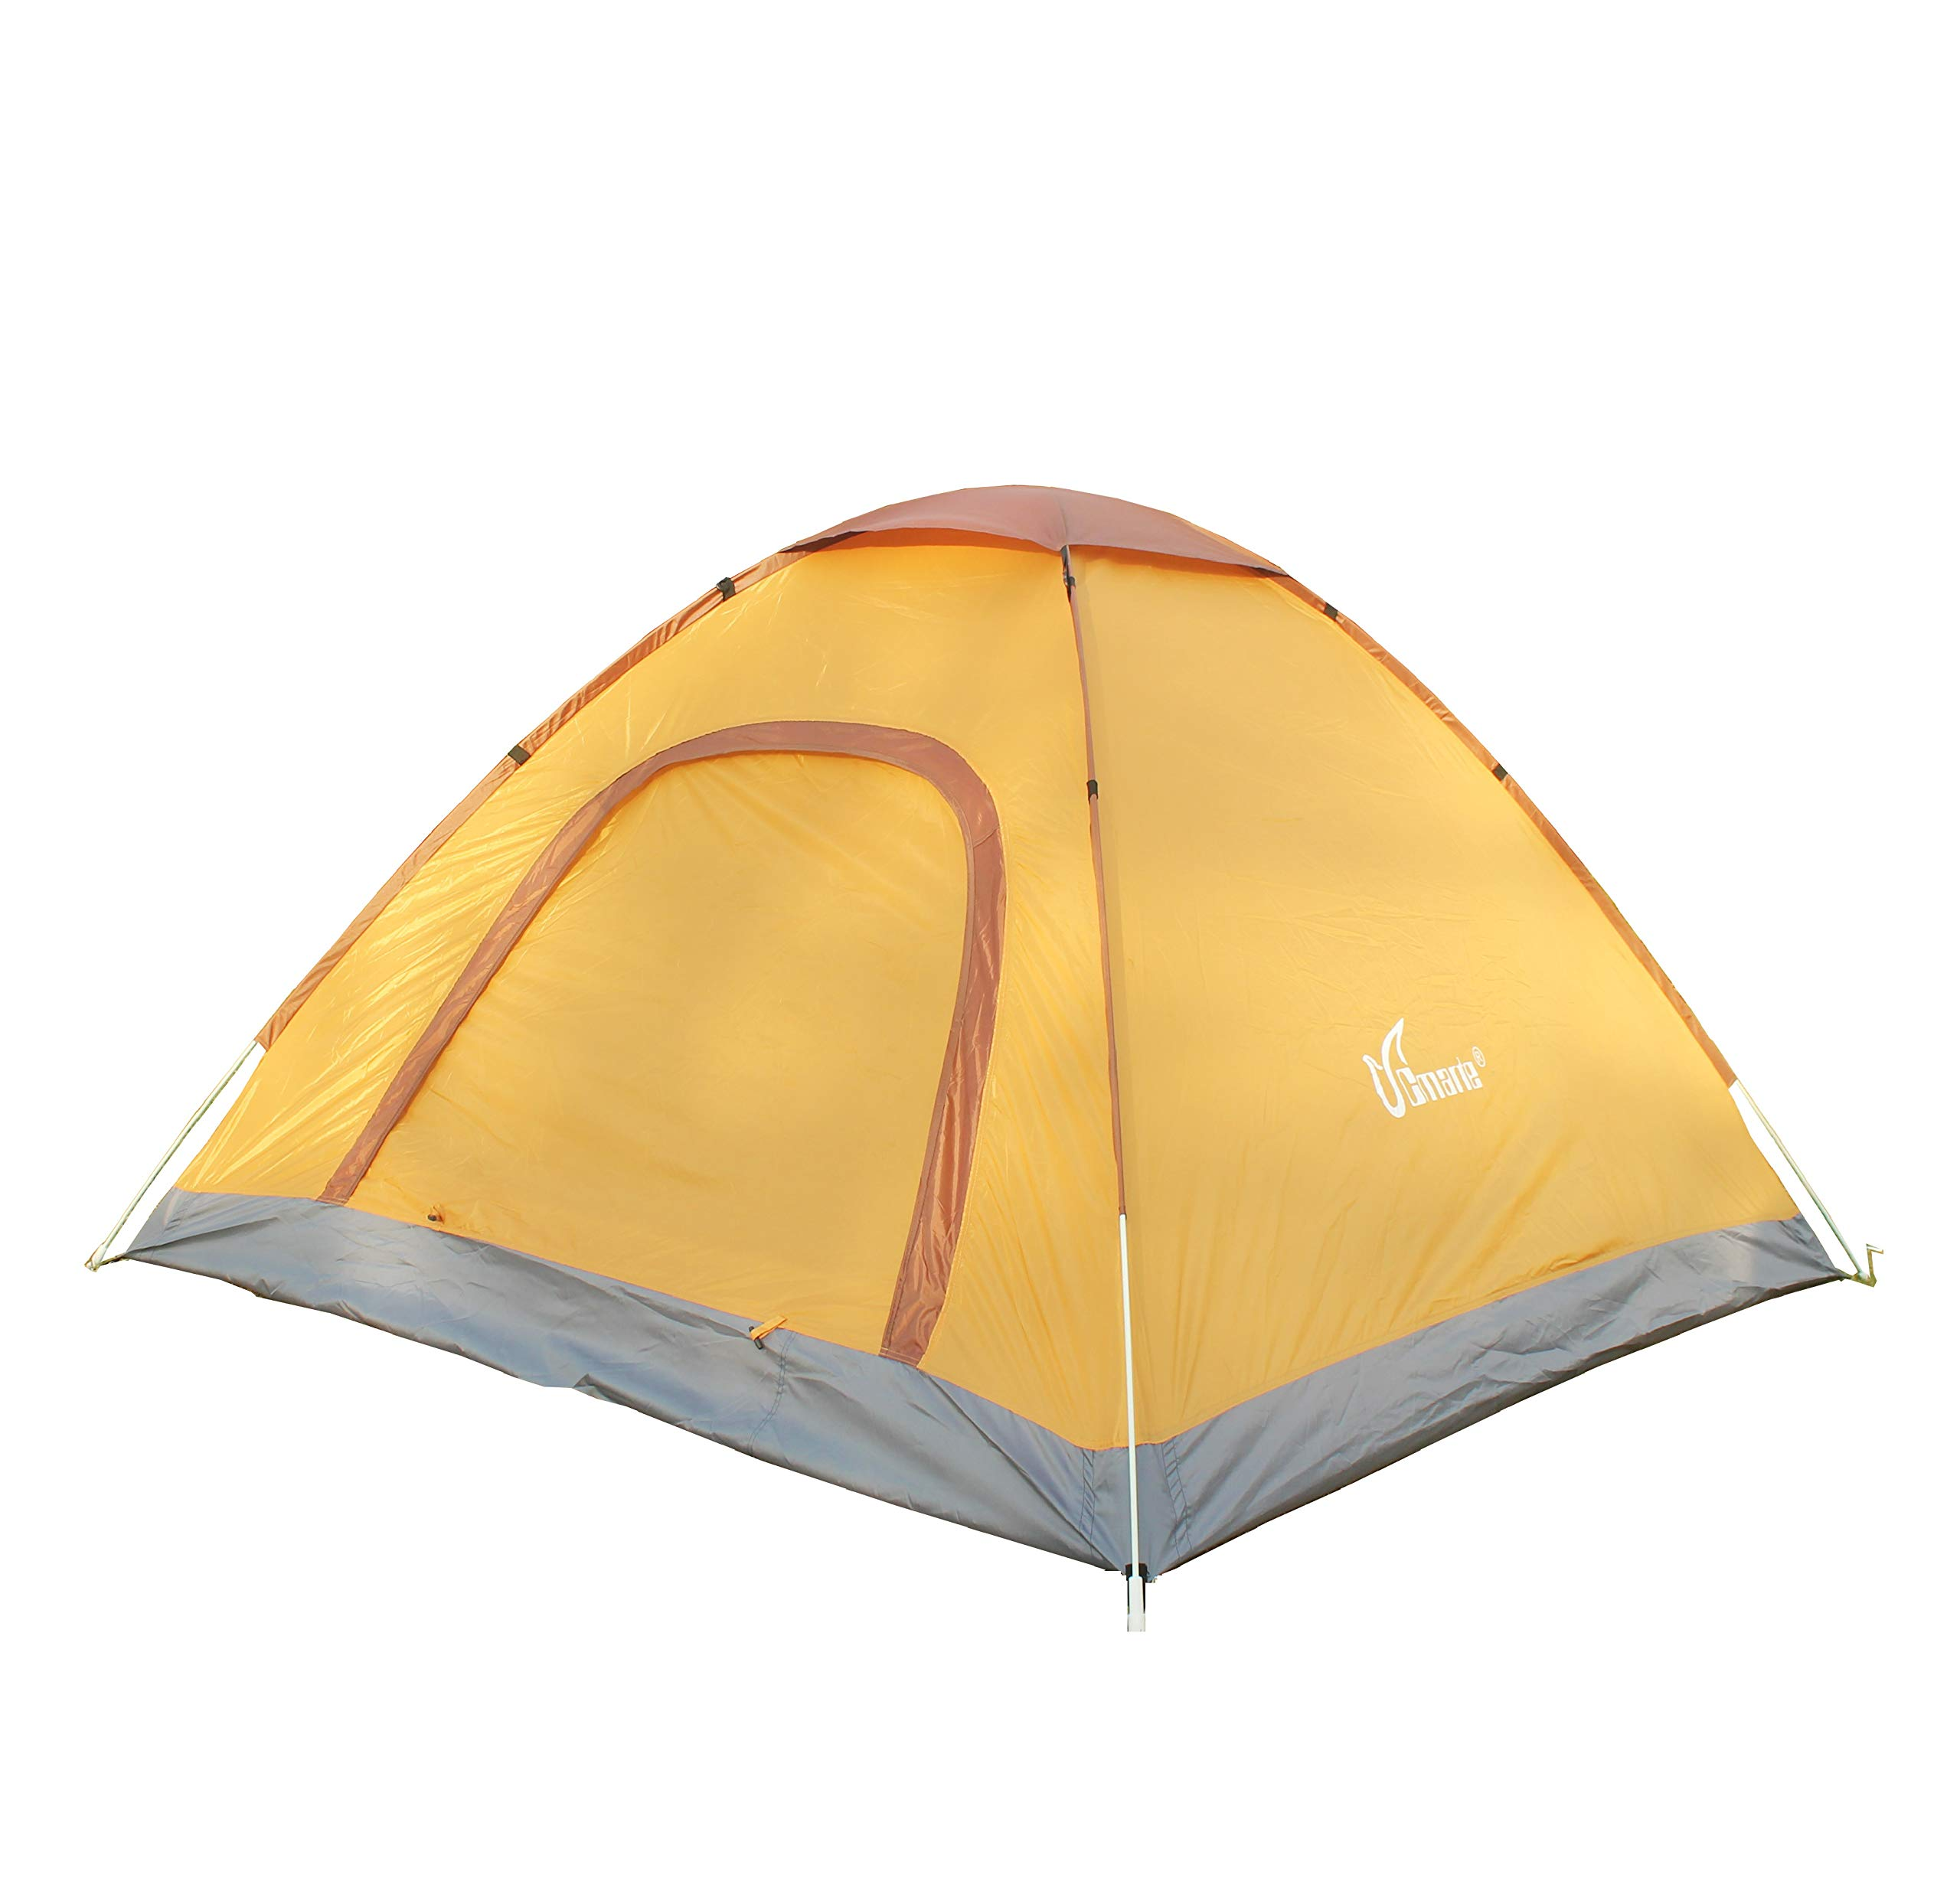 cmarte Lightweight, Pop Up Instant Cabin Stable Tent for Family in Traveling, Beach, Camping & Outdoor Activity